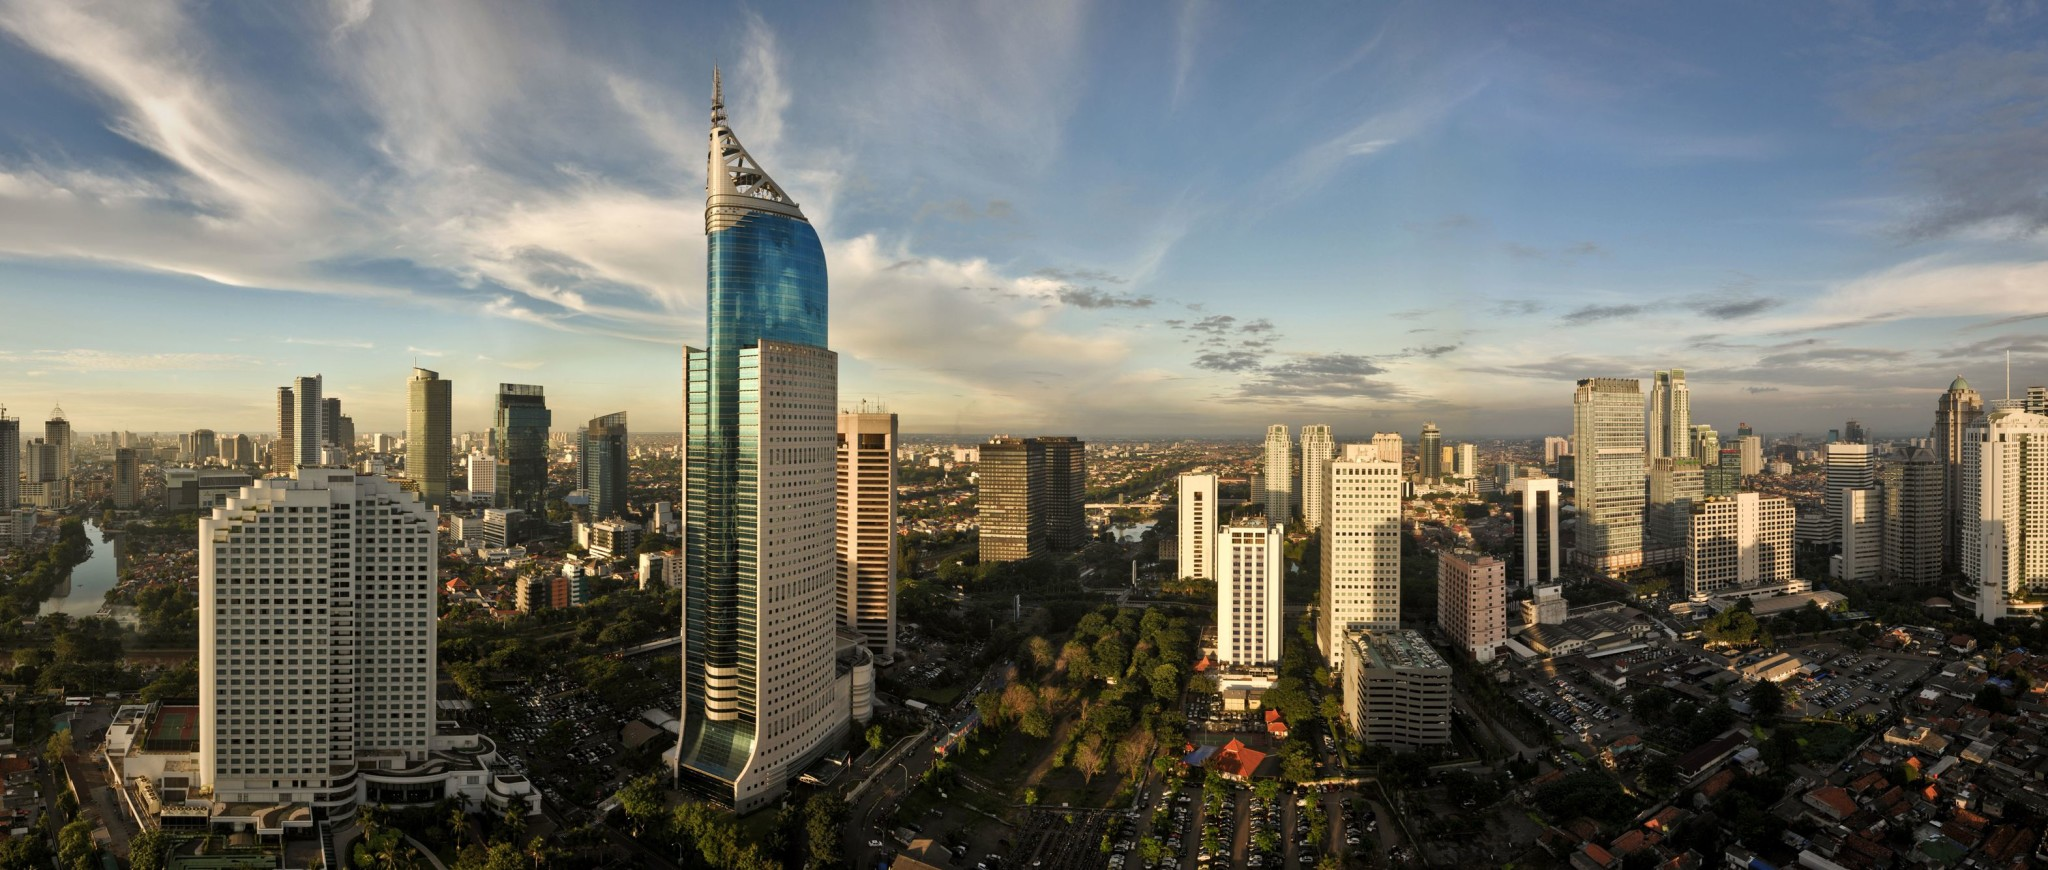 Jakarta - Real Estate Market Research Report